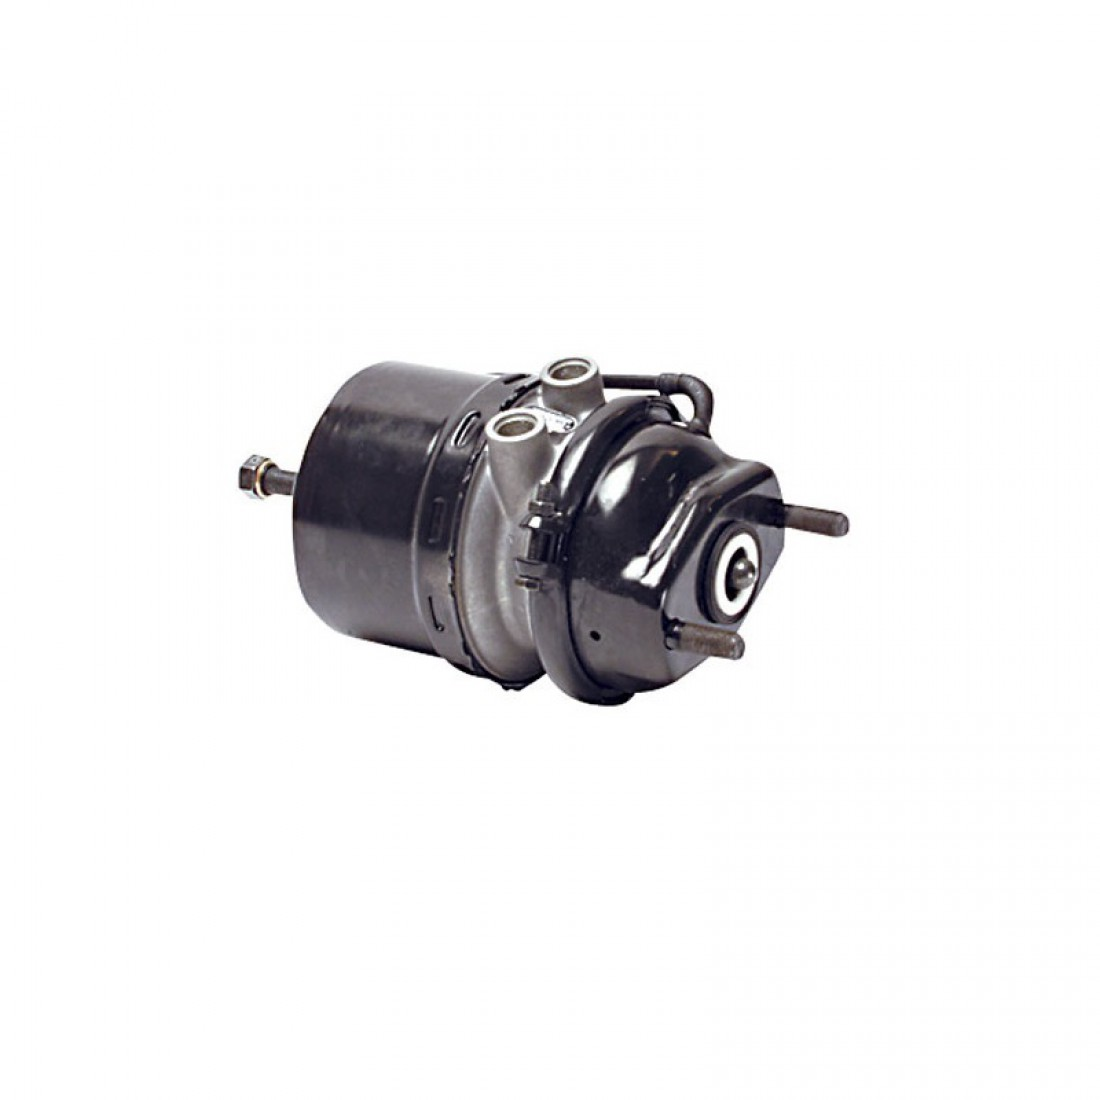 Spring Brake Cylinder replaces Knorr: Bs8500 / T 24/30